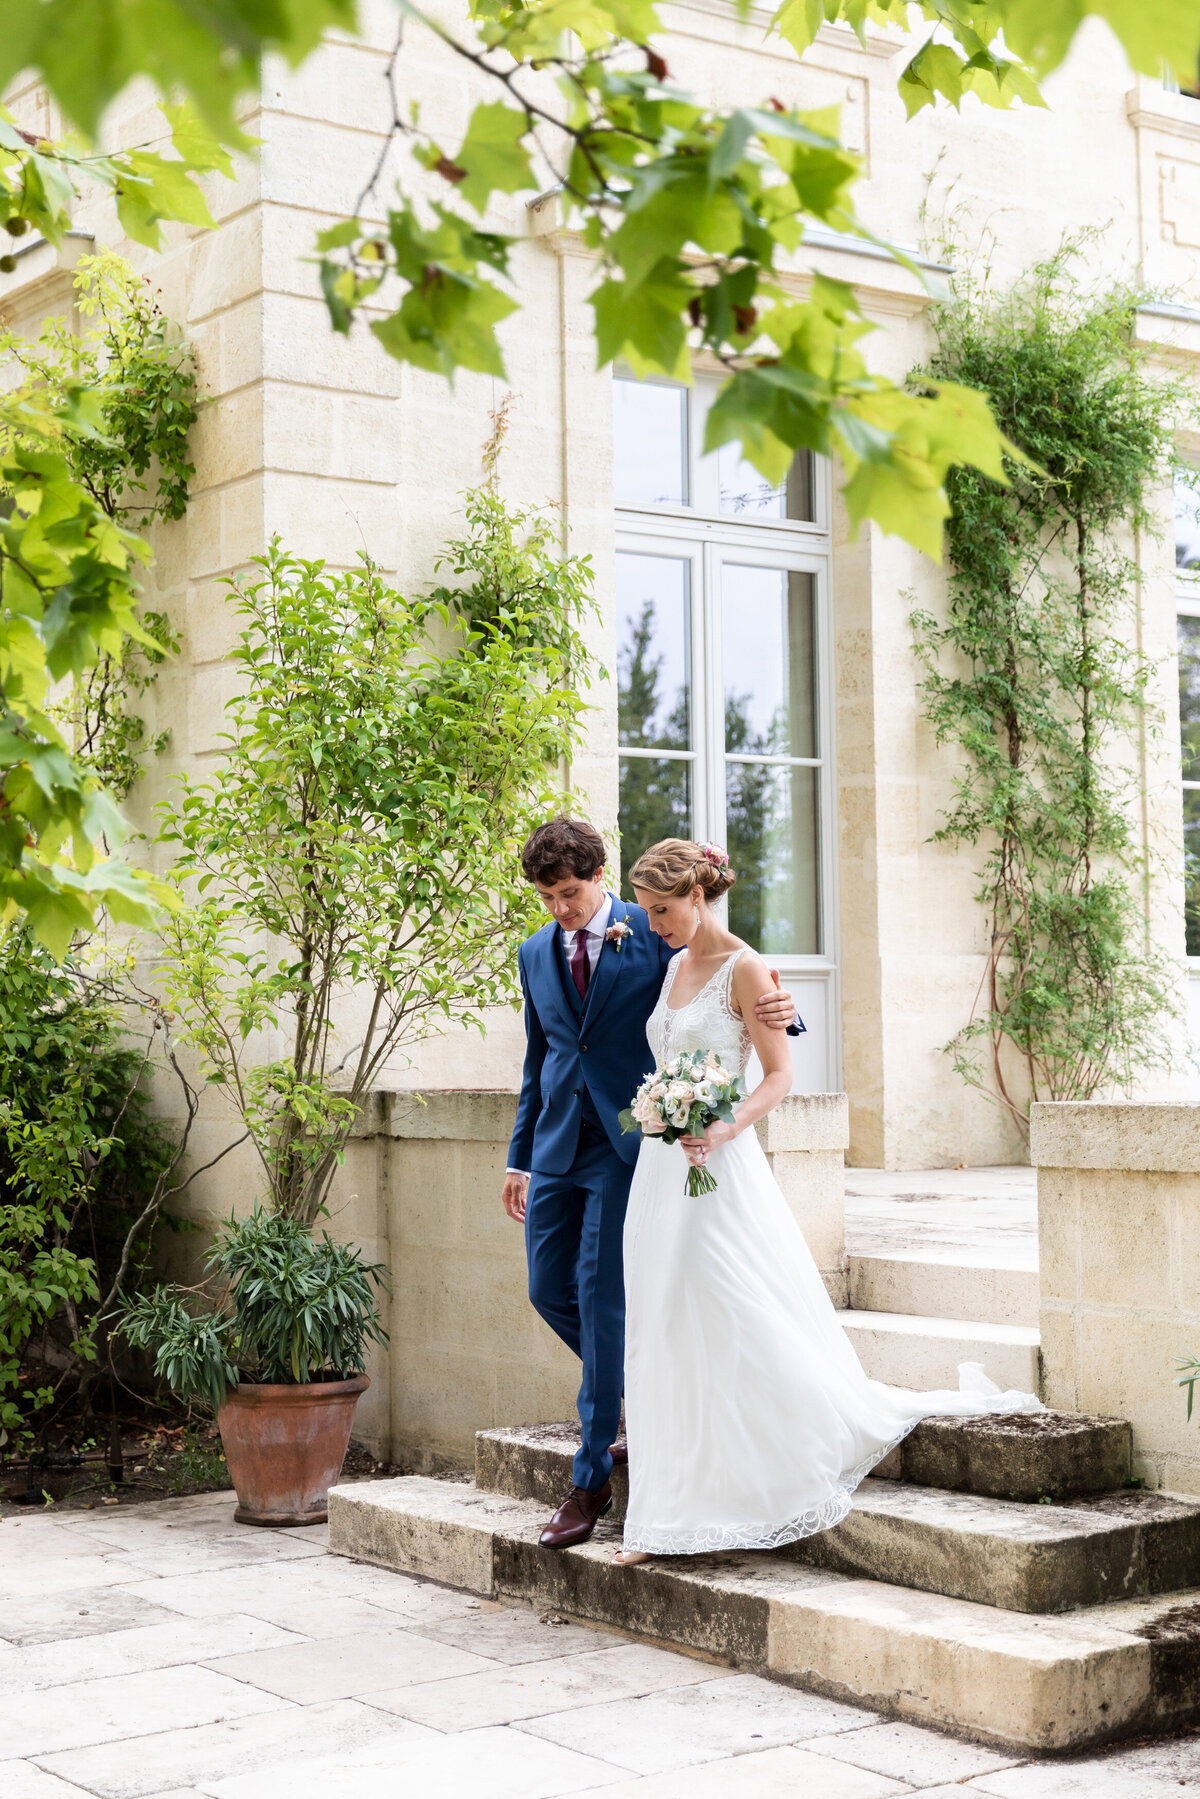 Bordeaux_France_0284_Daina_Olivier_Wedding_1422